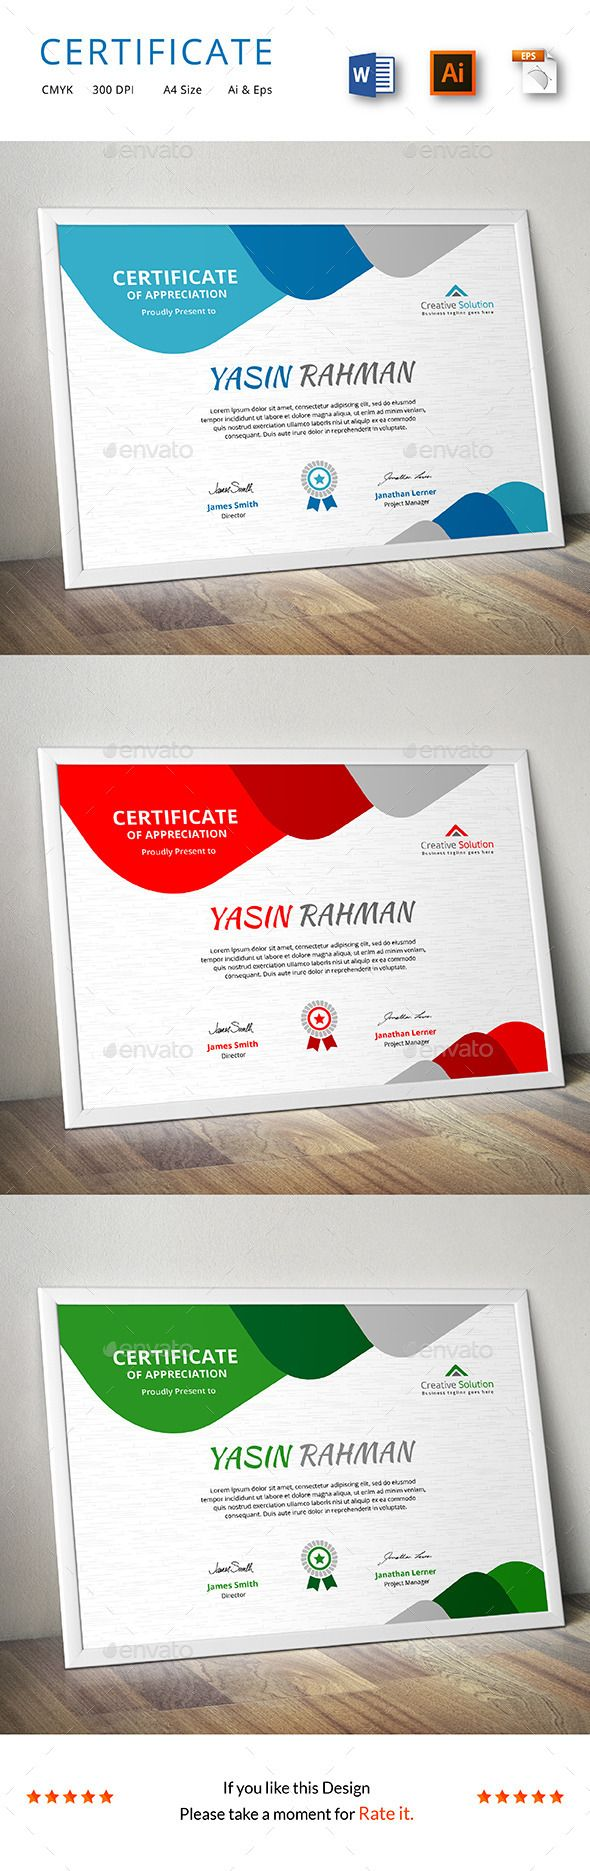 Certificate - Certificate Template Vector EPS, Vector AI. Download here: http://graphicriver.net/item/certificate/13886434?s_rank=100&ref=yinkira